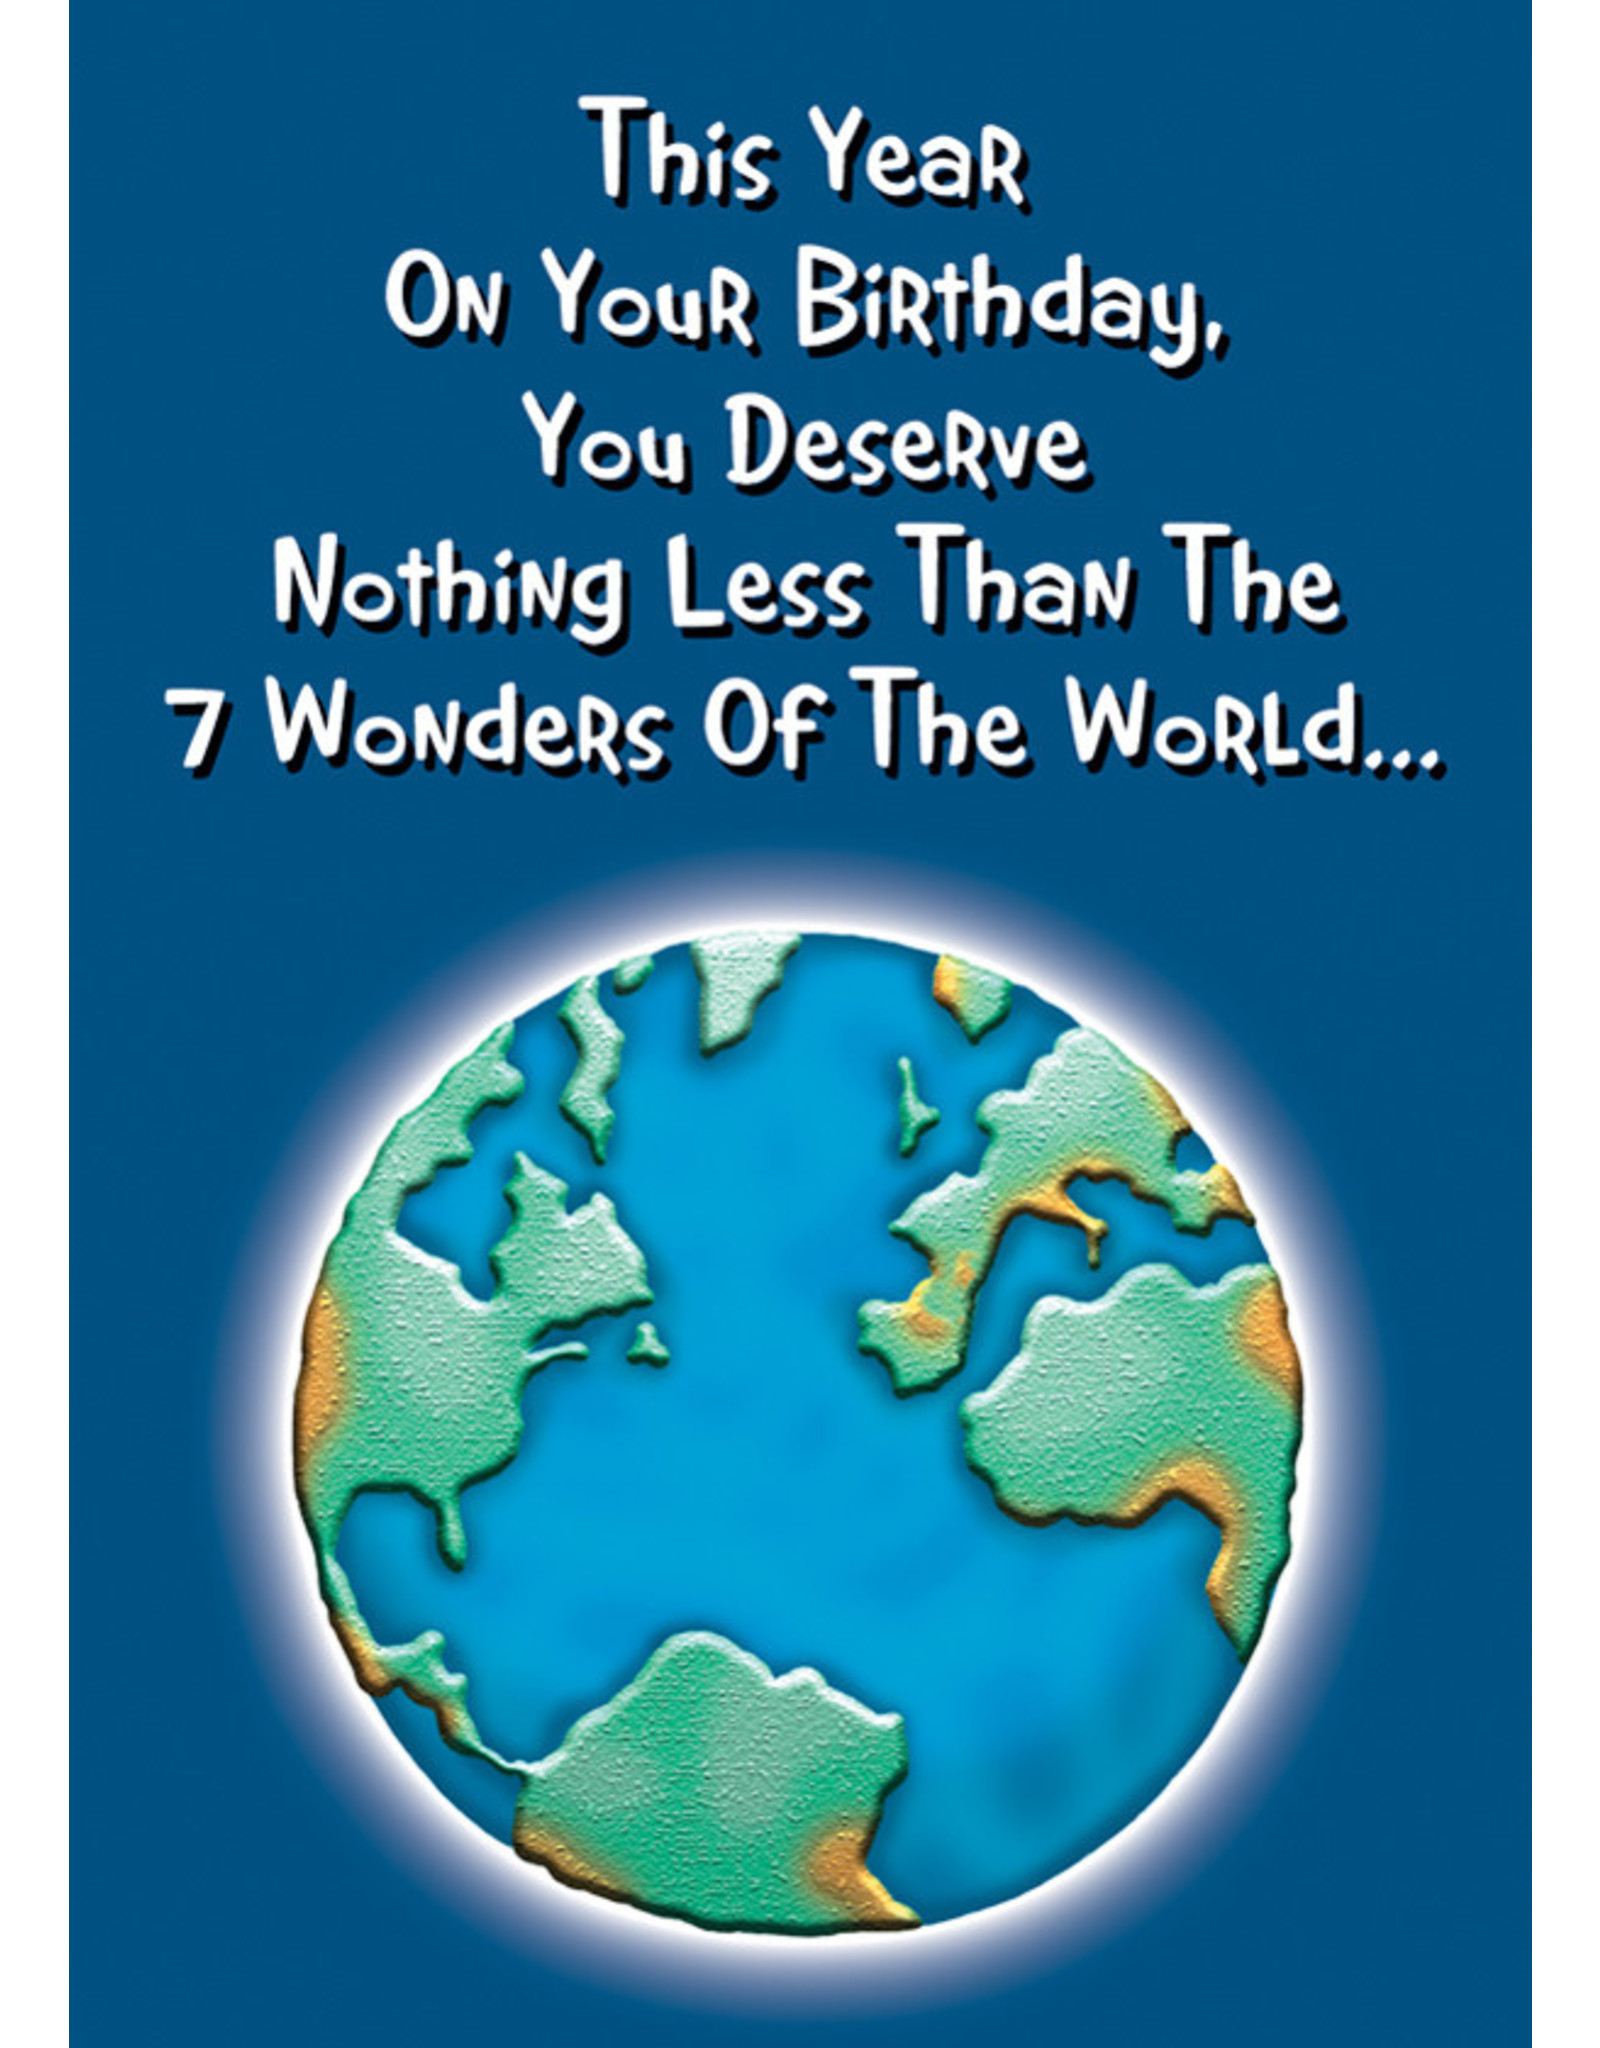 OZZE 7 WONDERS OF THE WORLD... CARD